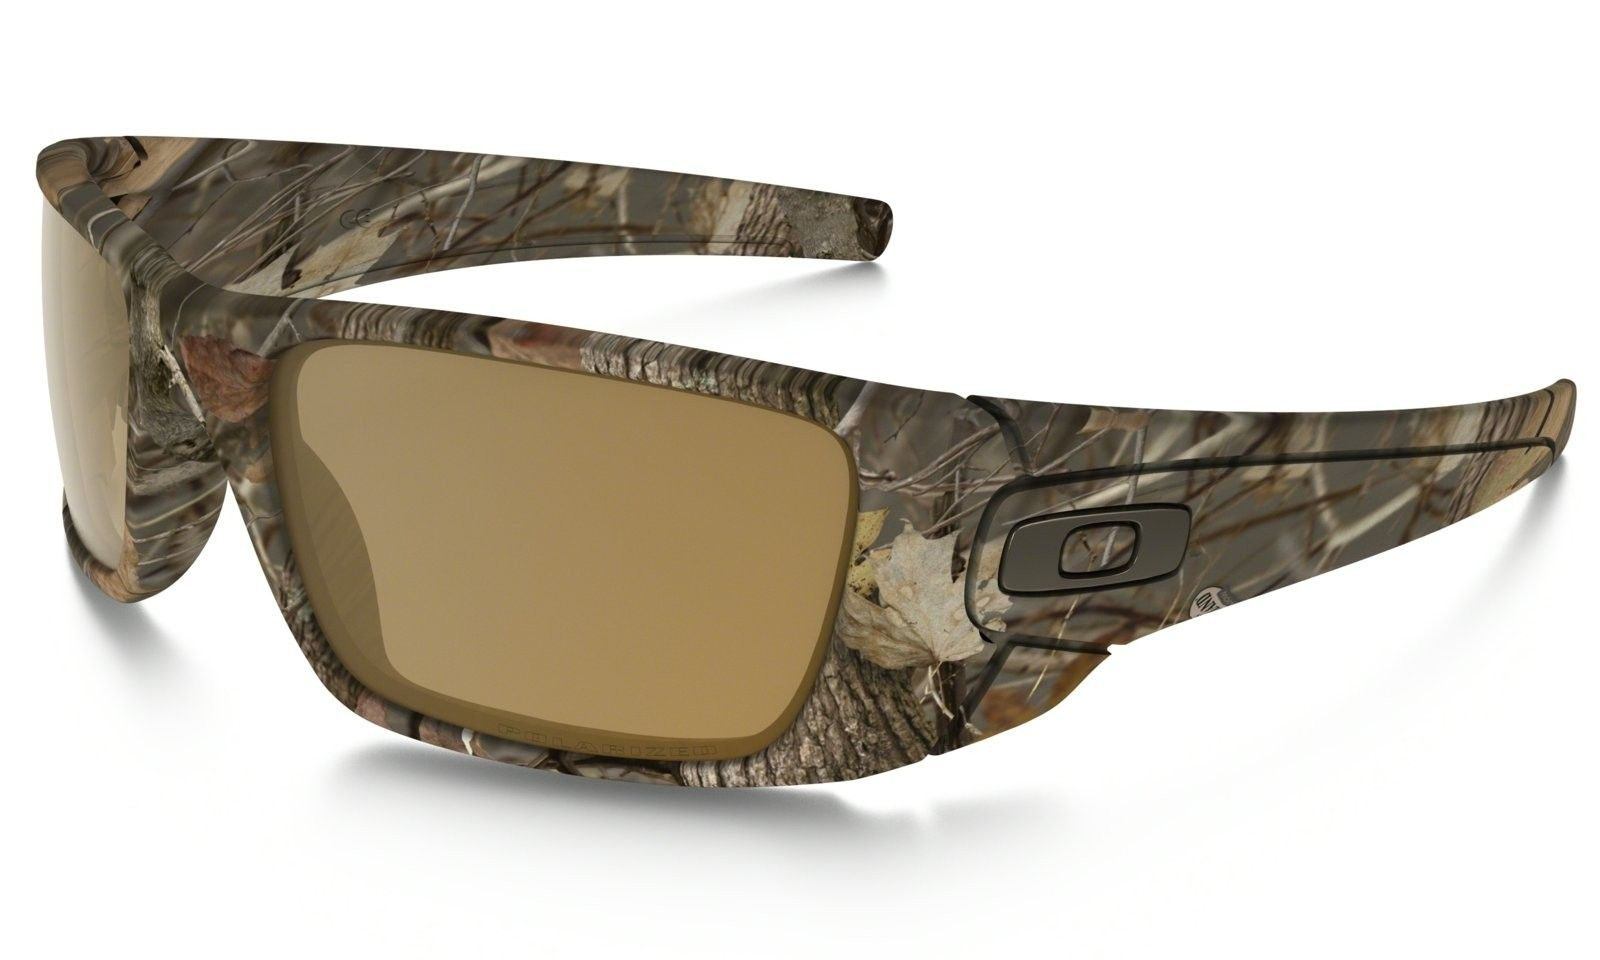 Kings Camo Fuel Cells for turbine or hijinx - main_OO9096-D9_fuel-cell_woodland-camo-bronze-polarized_001_86938_png_zoom.jpg